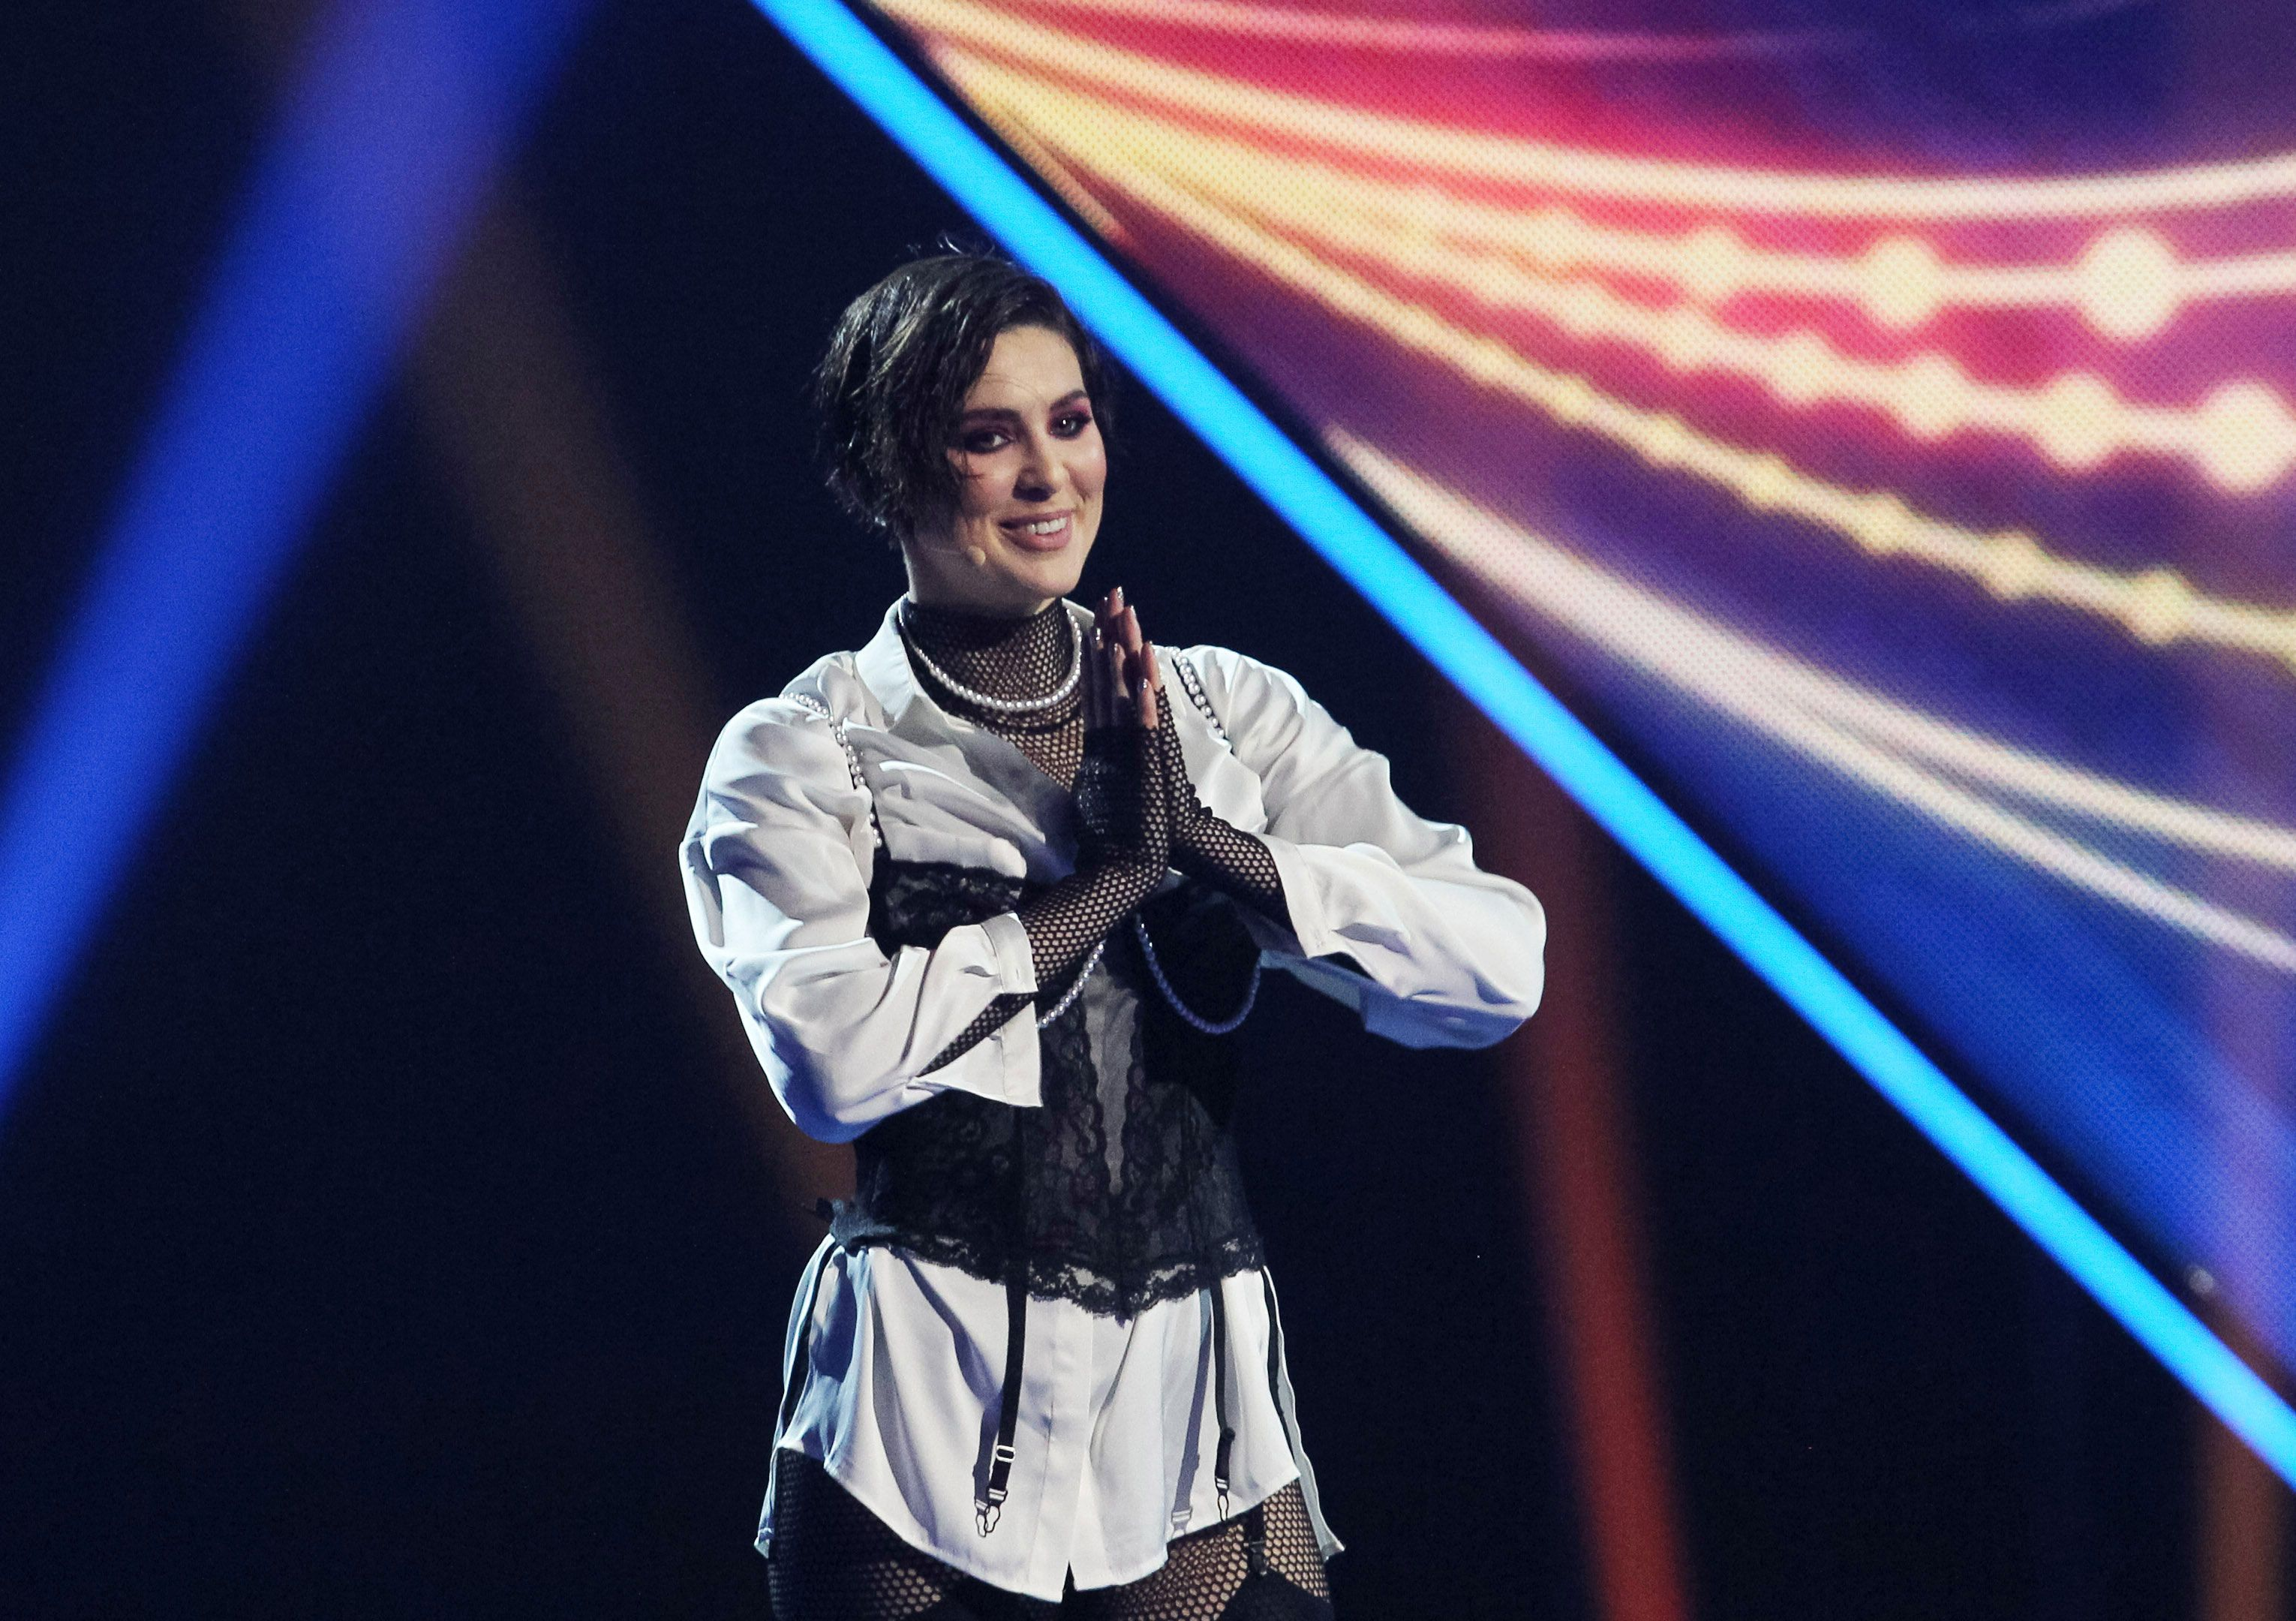 Ukraine quits Eurovision 2019 after its contestant pulls out of competition